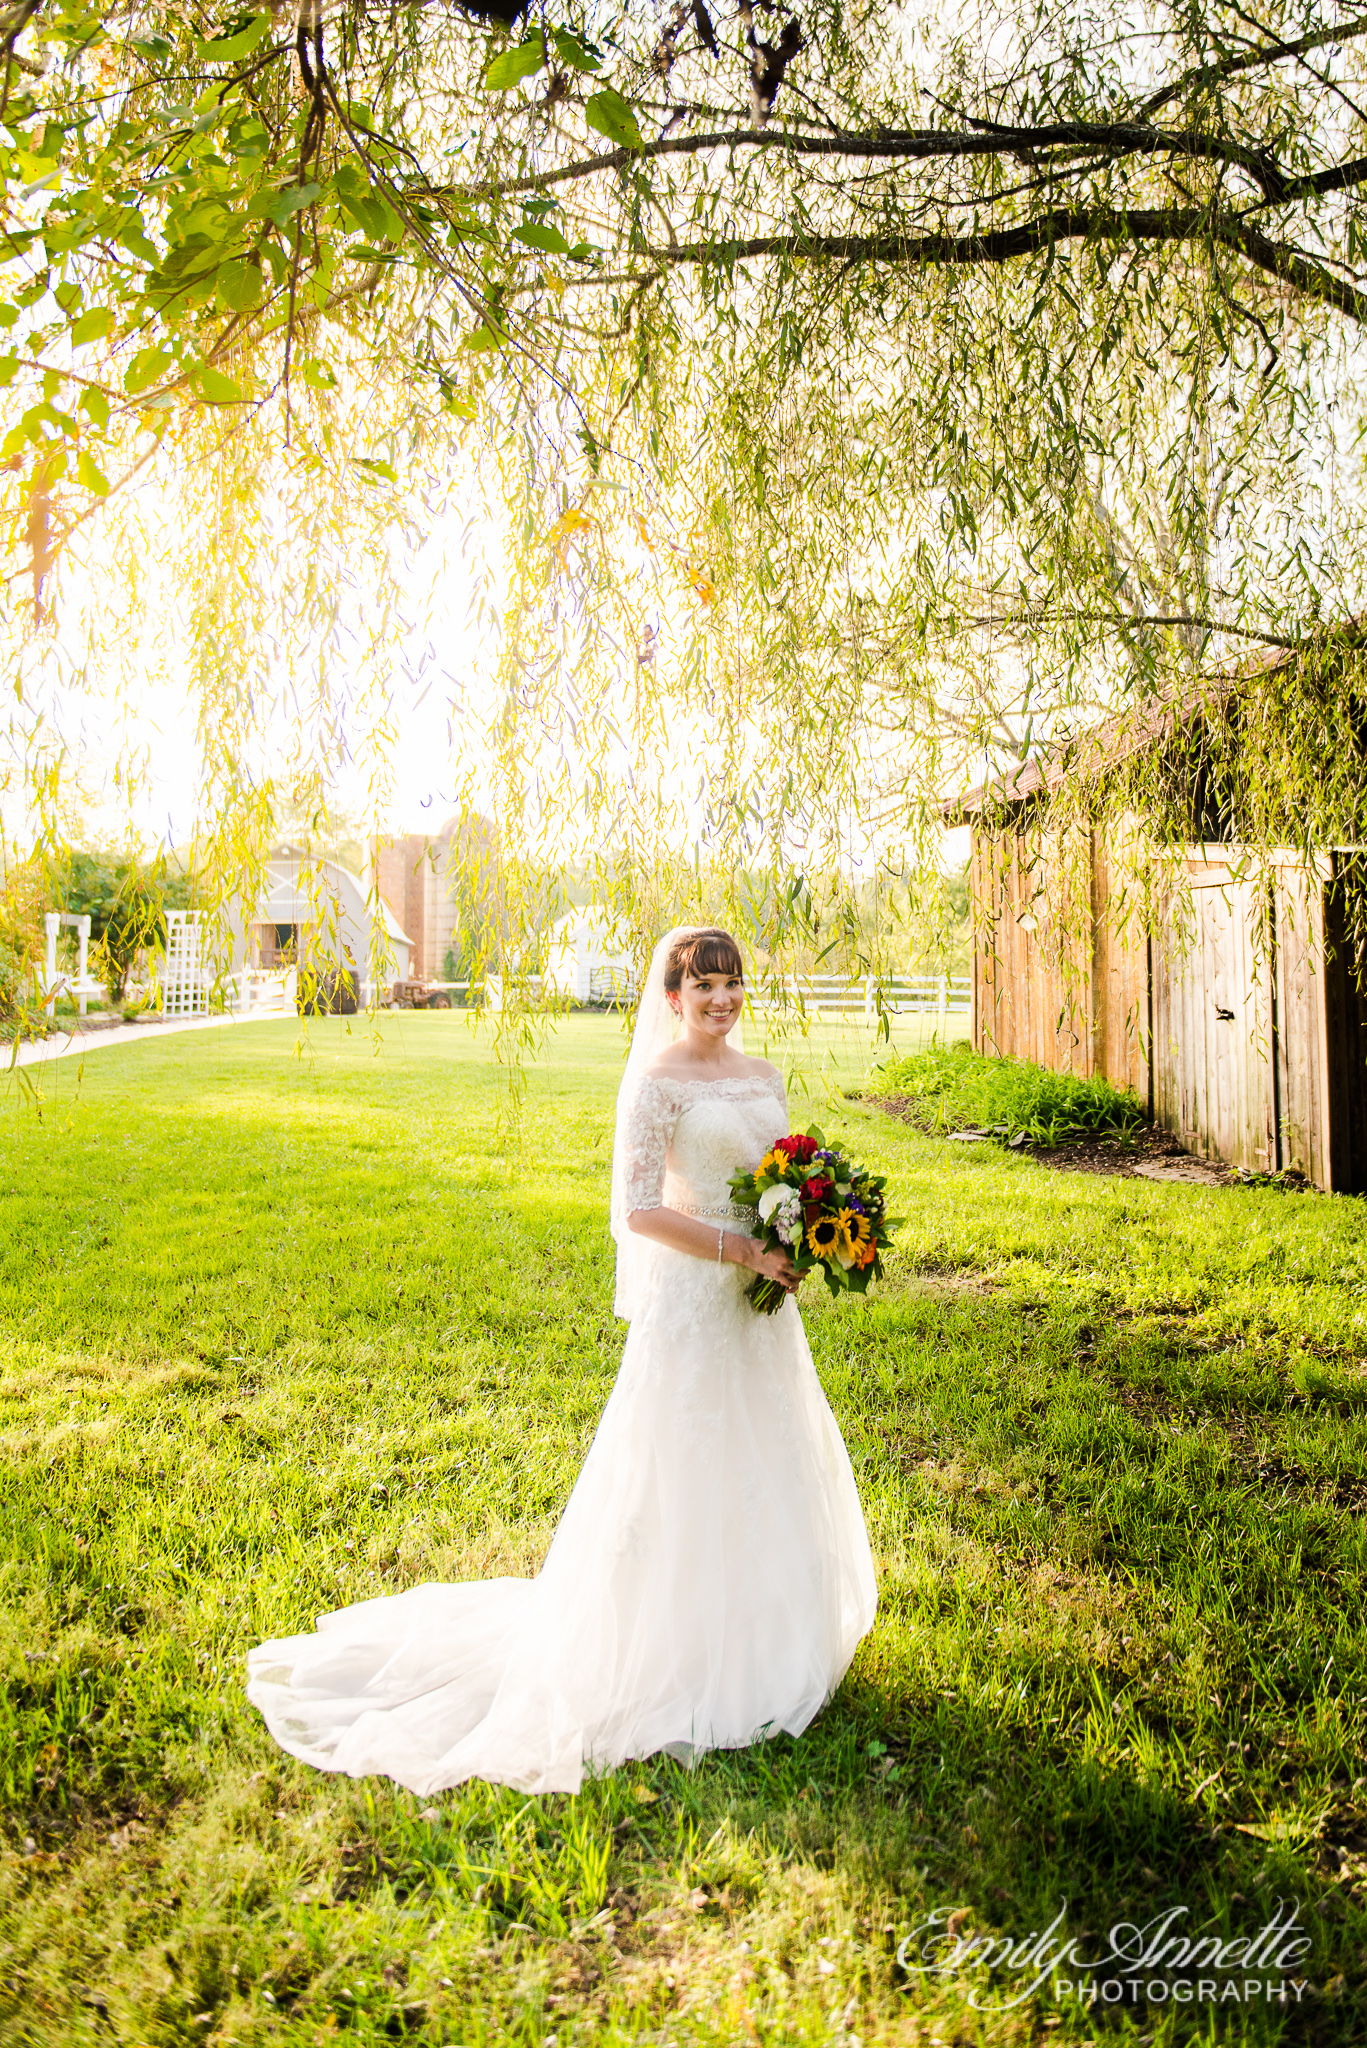 A bride poses for a classic portrait under a weeping branched tree while holding a colorful fall bouquet during a country wedding at Amber Grove near Richmond, Virginia